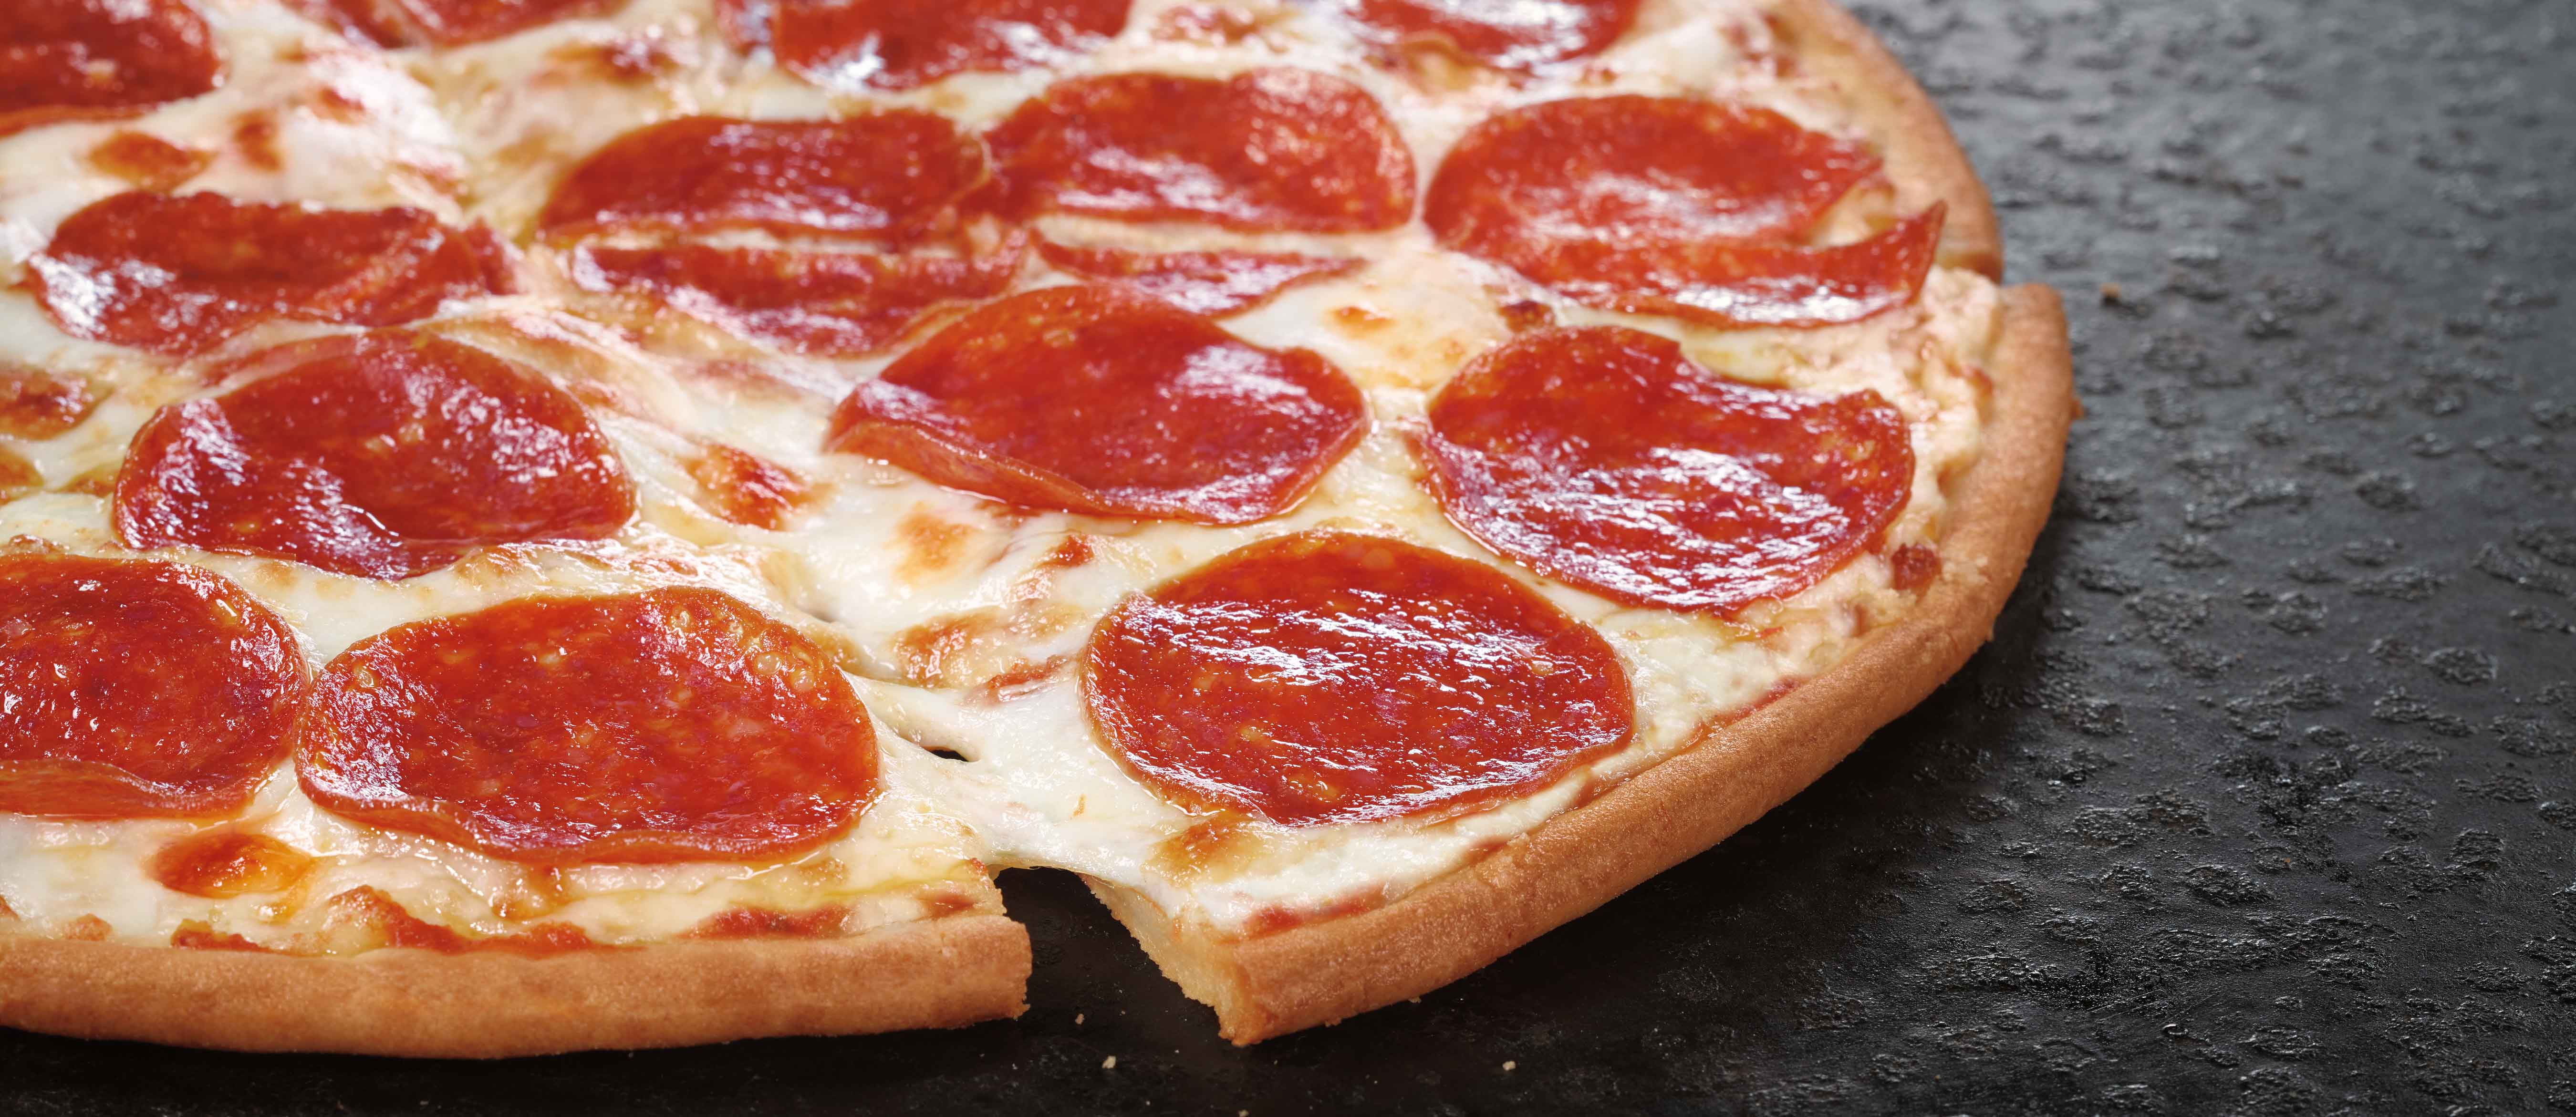 Pizza Hut® offers a Cheese-only Gluten-Free Pizza and a Pepperoni Gluten-Free Pizza made with Udi's® certified gluten-free crust which is prepared following a strict preparation process certified by the Gluten Intolerance Group (GIG).